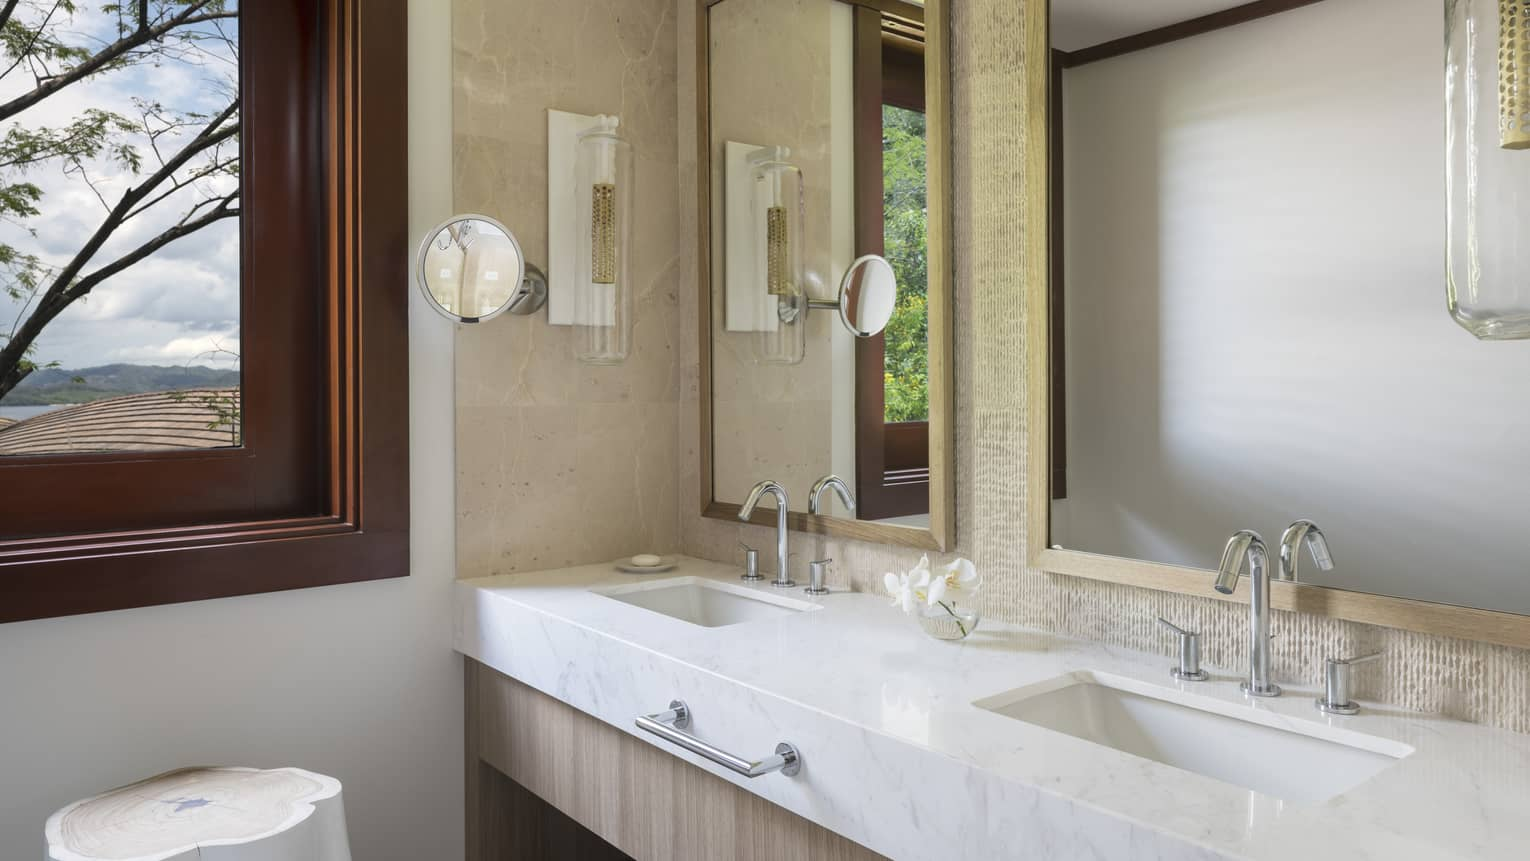 Bathroom View of Sinks and Mirrors with Window